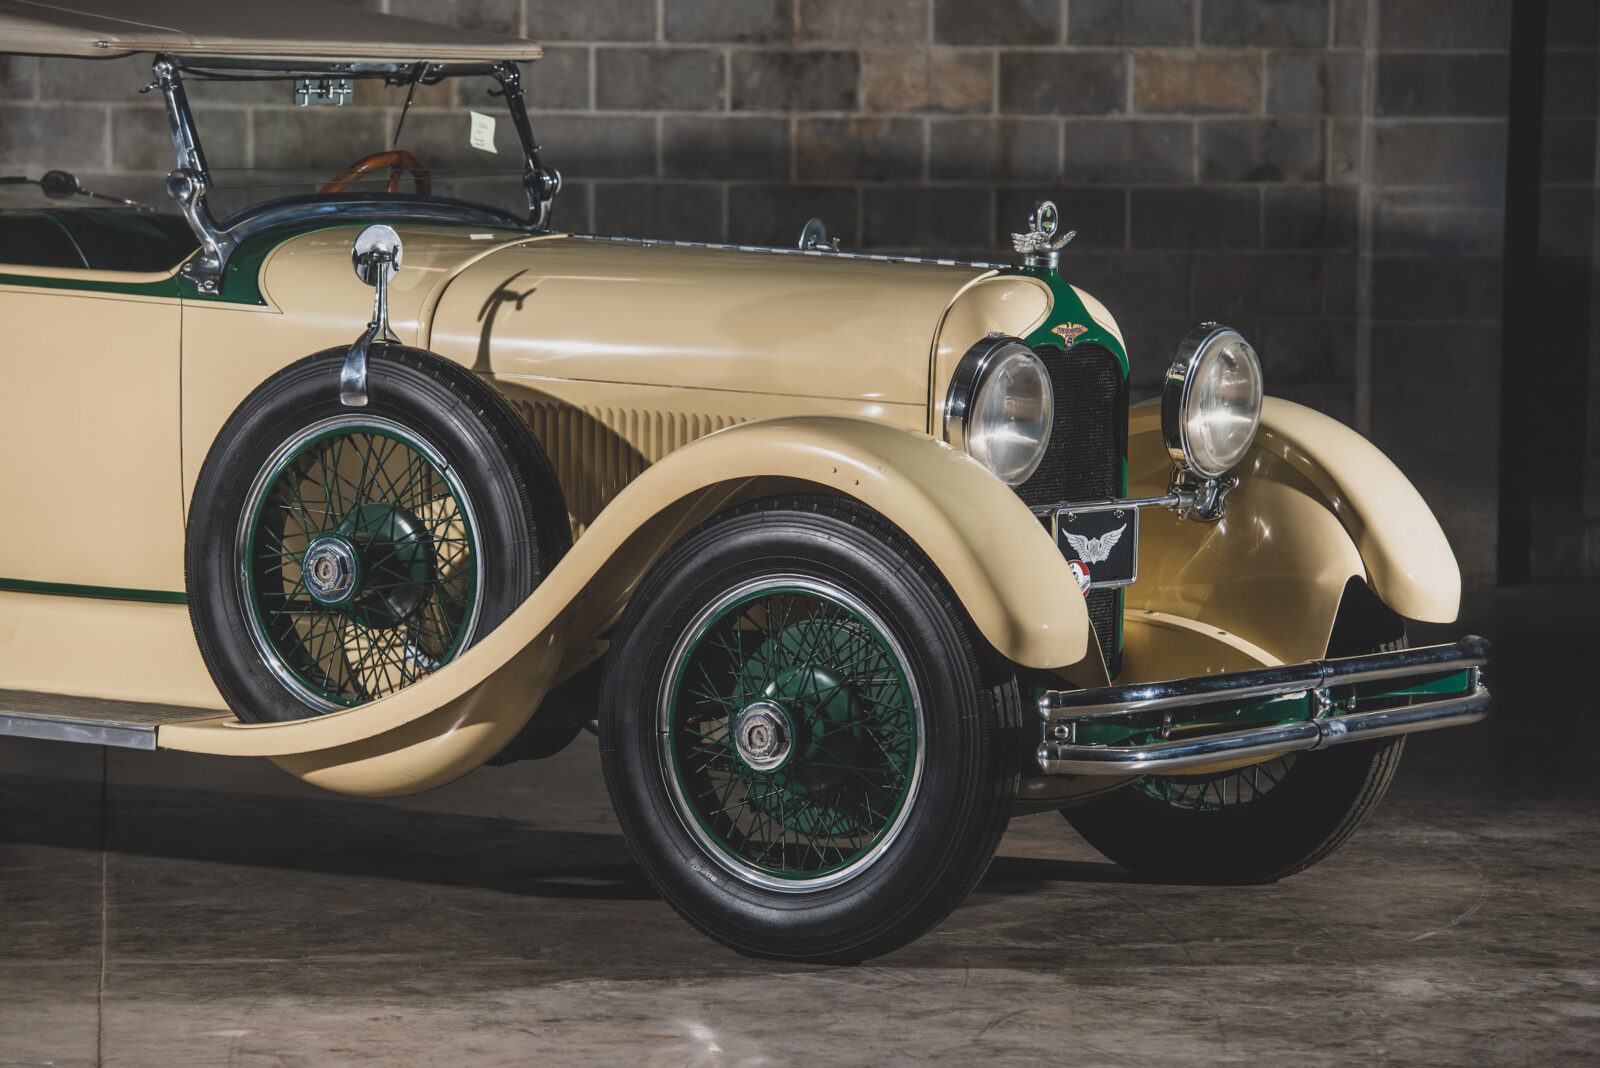 The Duesenberg Model X - The Rarest of the Production Duesenbergs